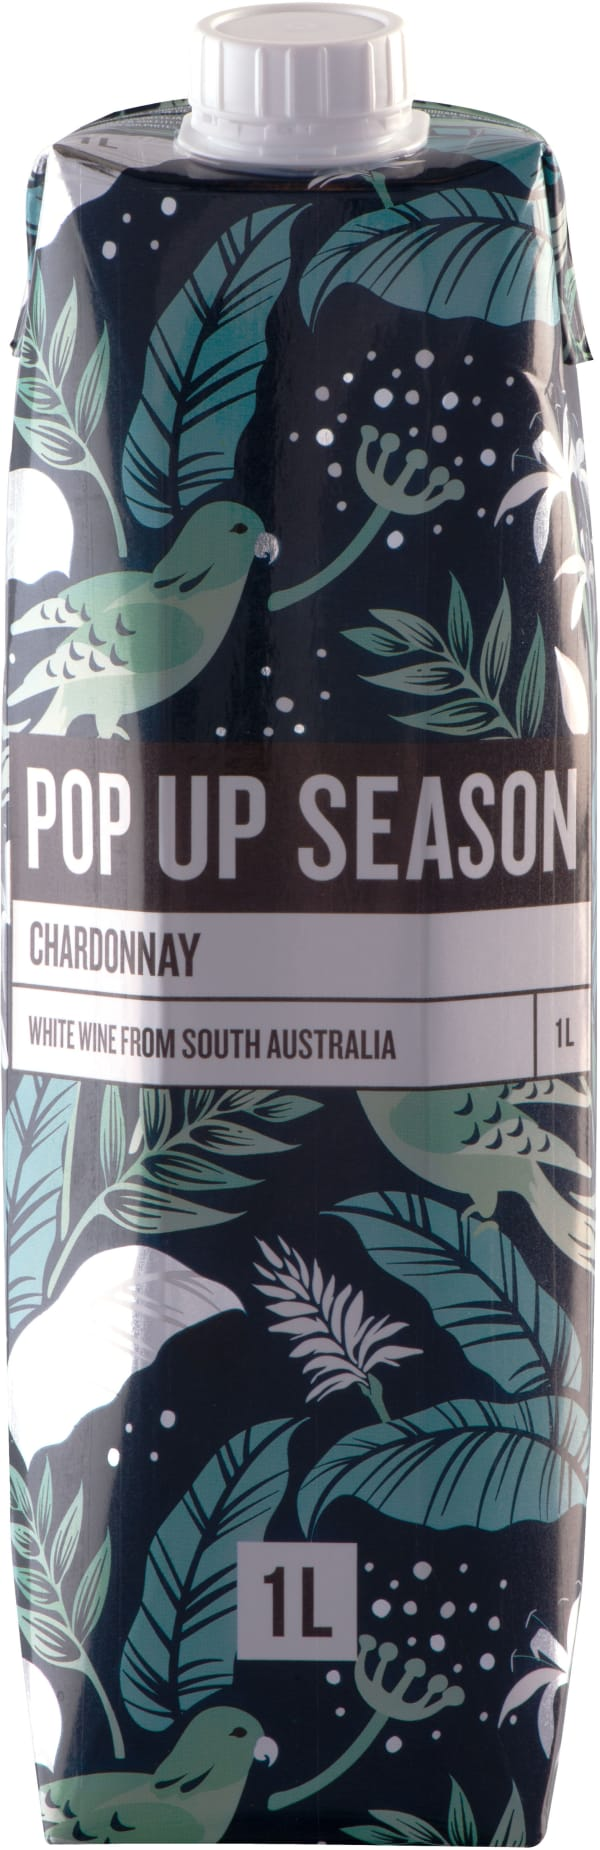 Pop Up Season Chardonnay 2018 carton package